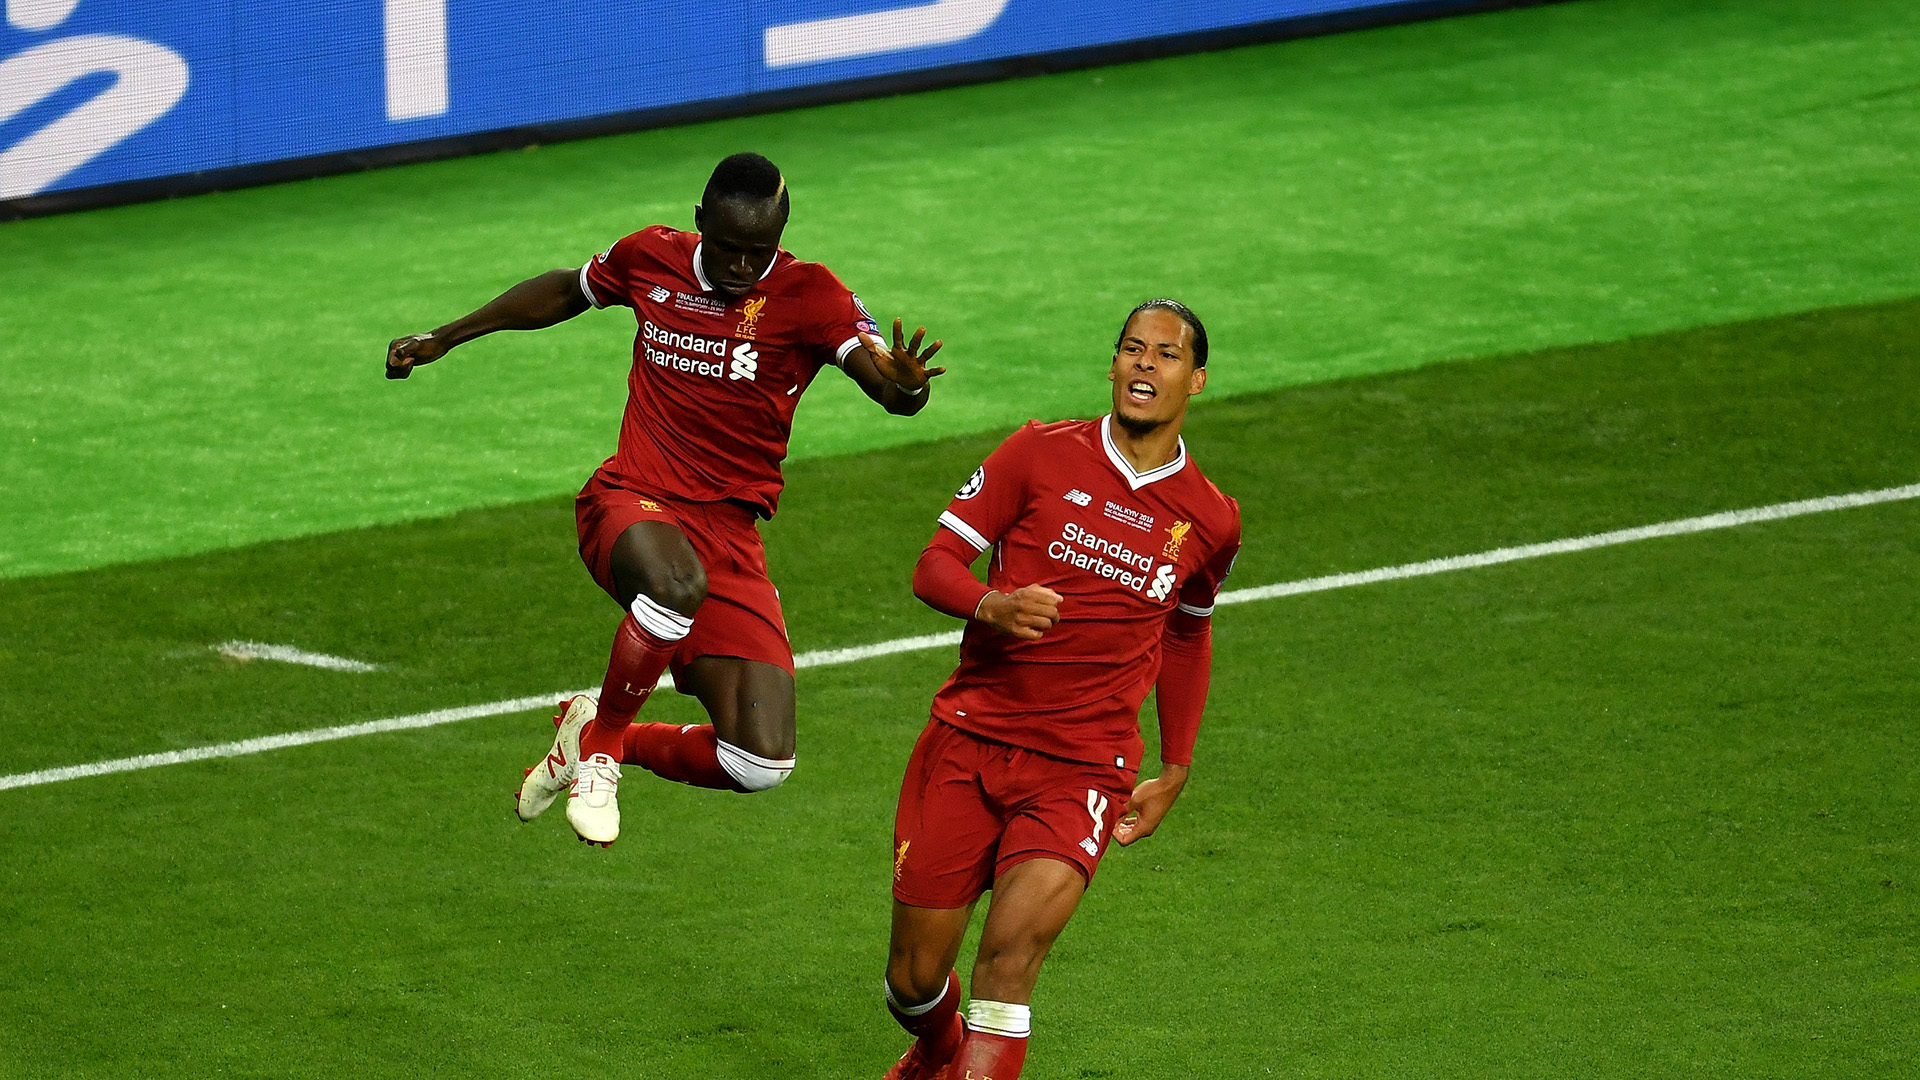 Van Dijk Mane goal Real Madrid Liverpool Champions League final 26052018